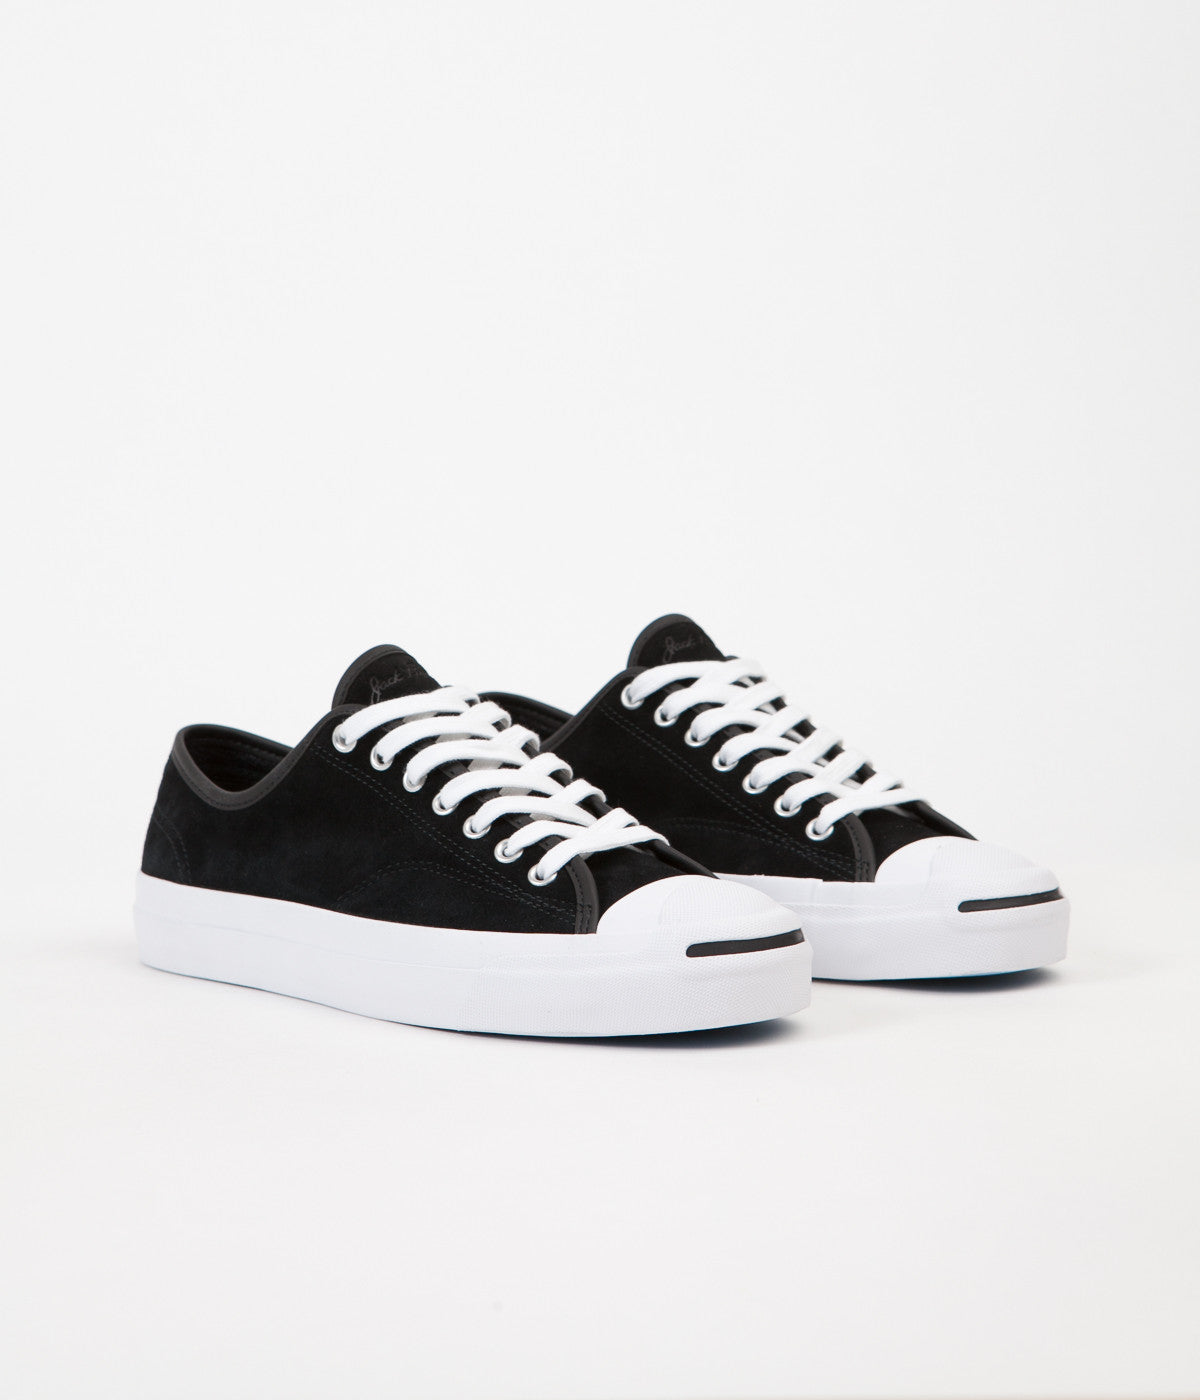 ... Converse x Polar Jack Purcell JP Pro Ox Shoes - Black   Black   White  ... 9efc6b8f2